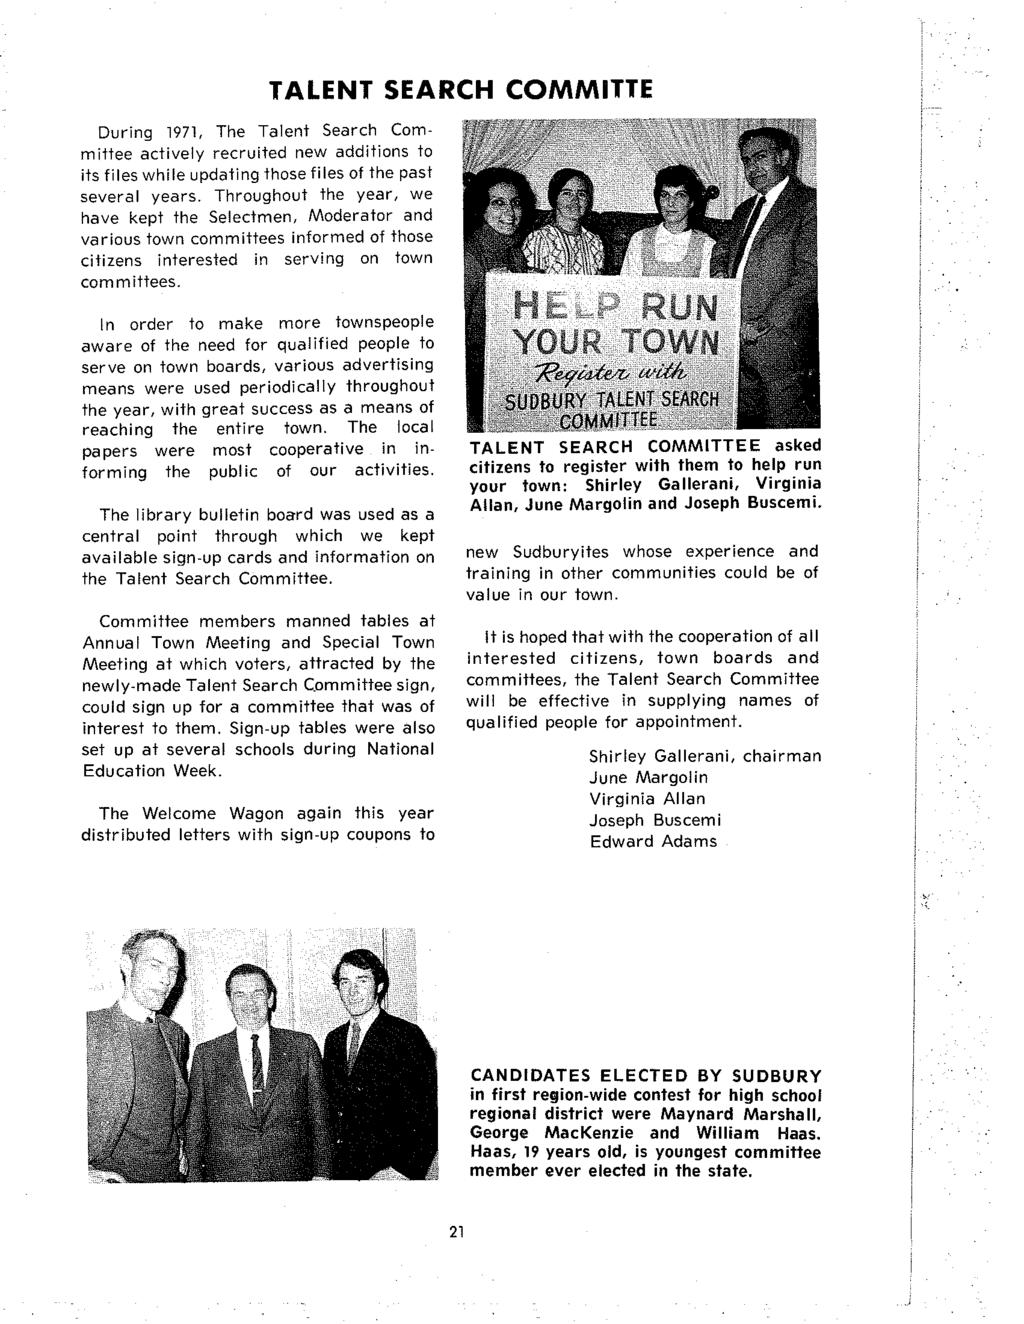 During 1971, The Talent Search Committee actively recruited new additions to its files while updating those files of the past several years.